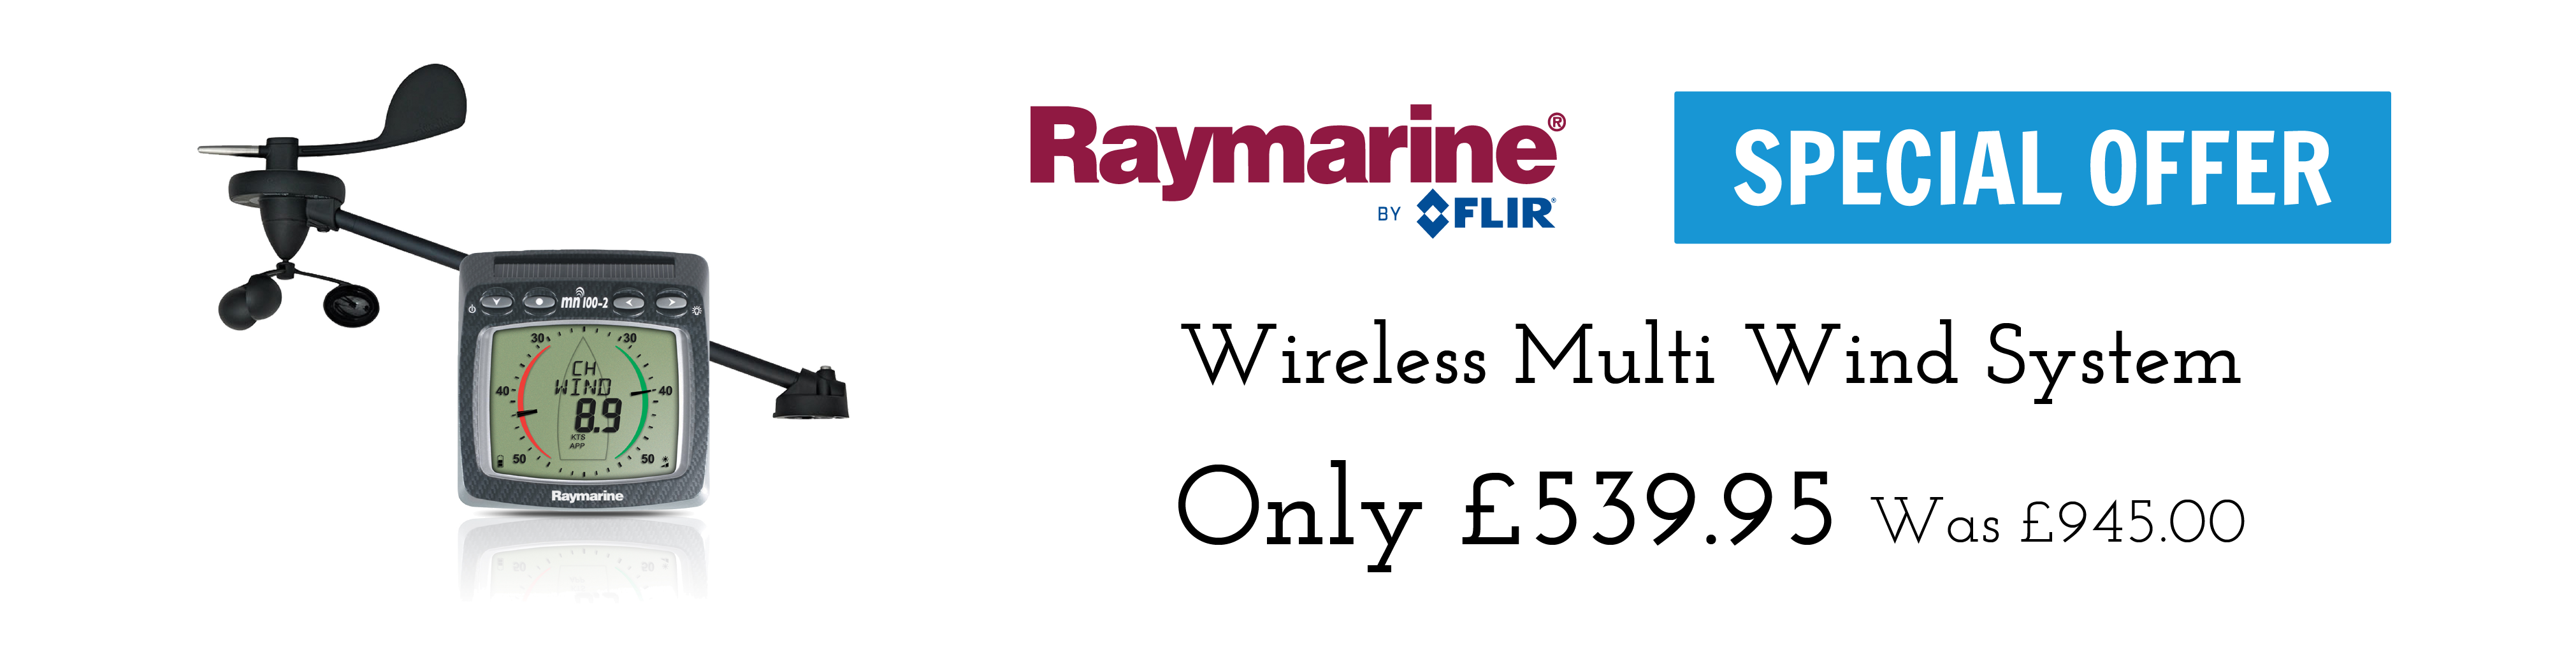 raymarine wireless multi wind instrument system special offer banner